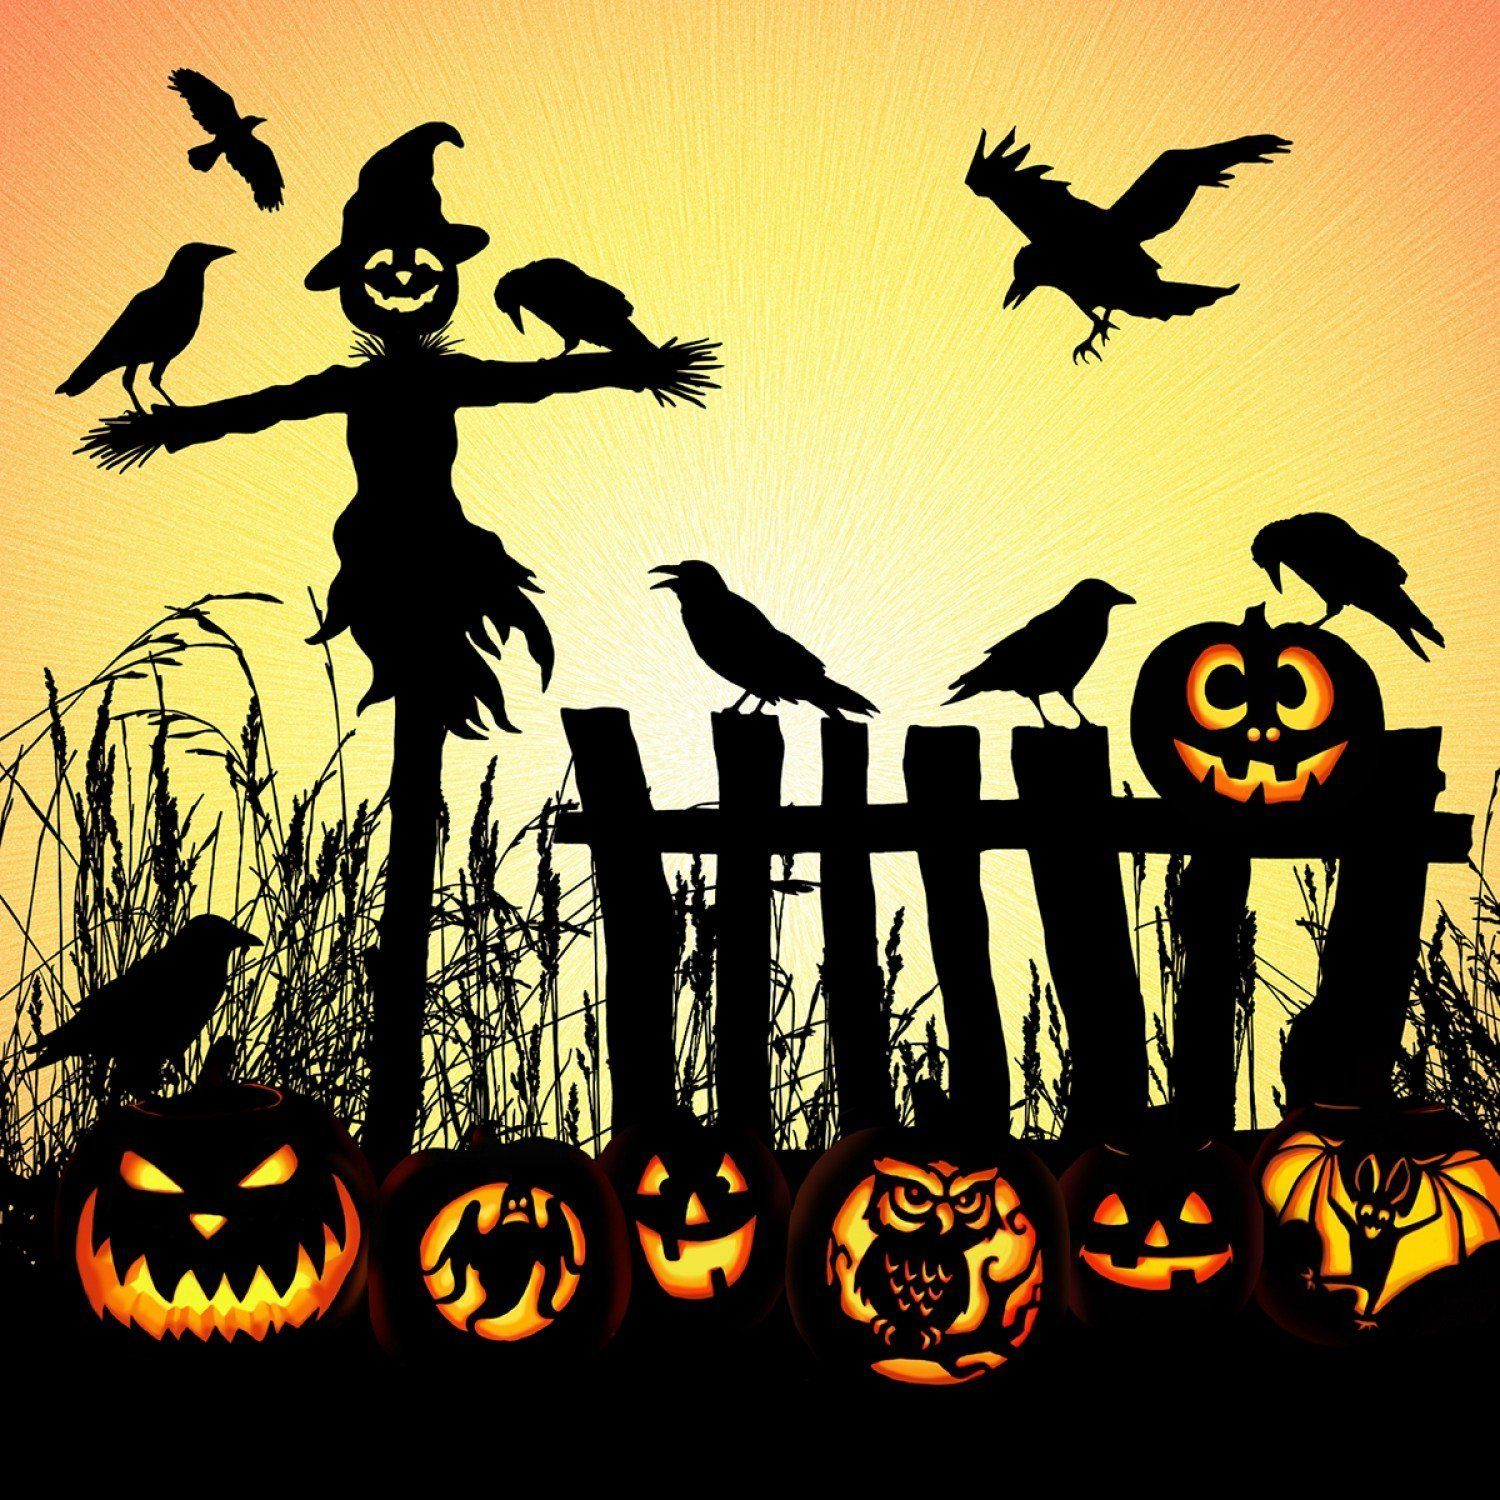 Spectrum Field Halloween 2020 Pin by barbara stavlo on Halloween in 2020 | Halloween scarecrow